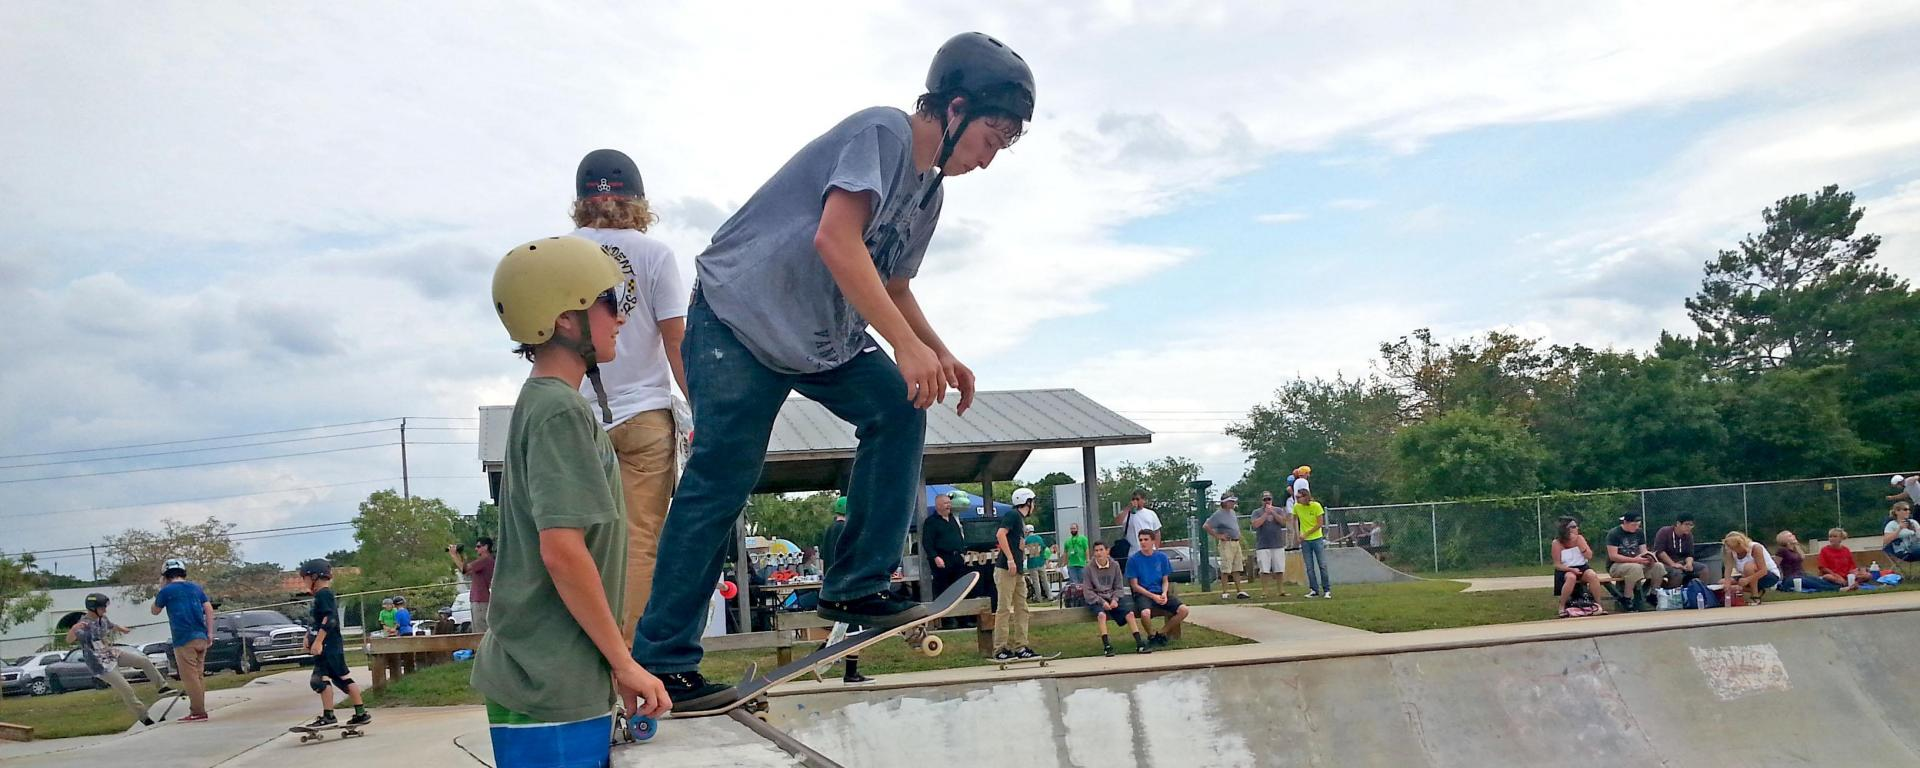 Teens enjoying Martin County Parks and Recreation Skate Parks.